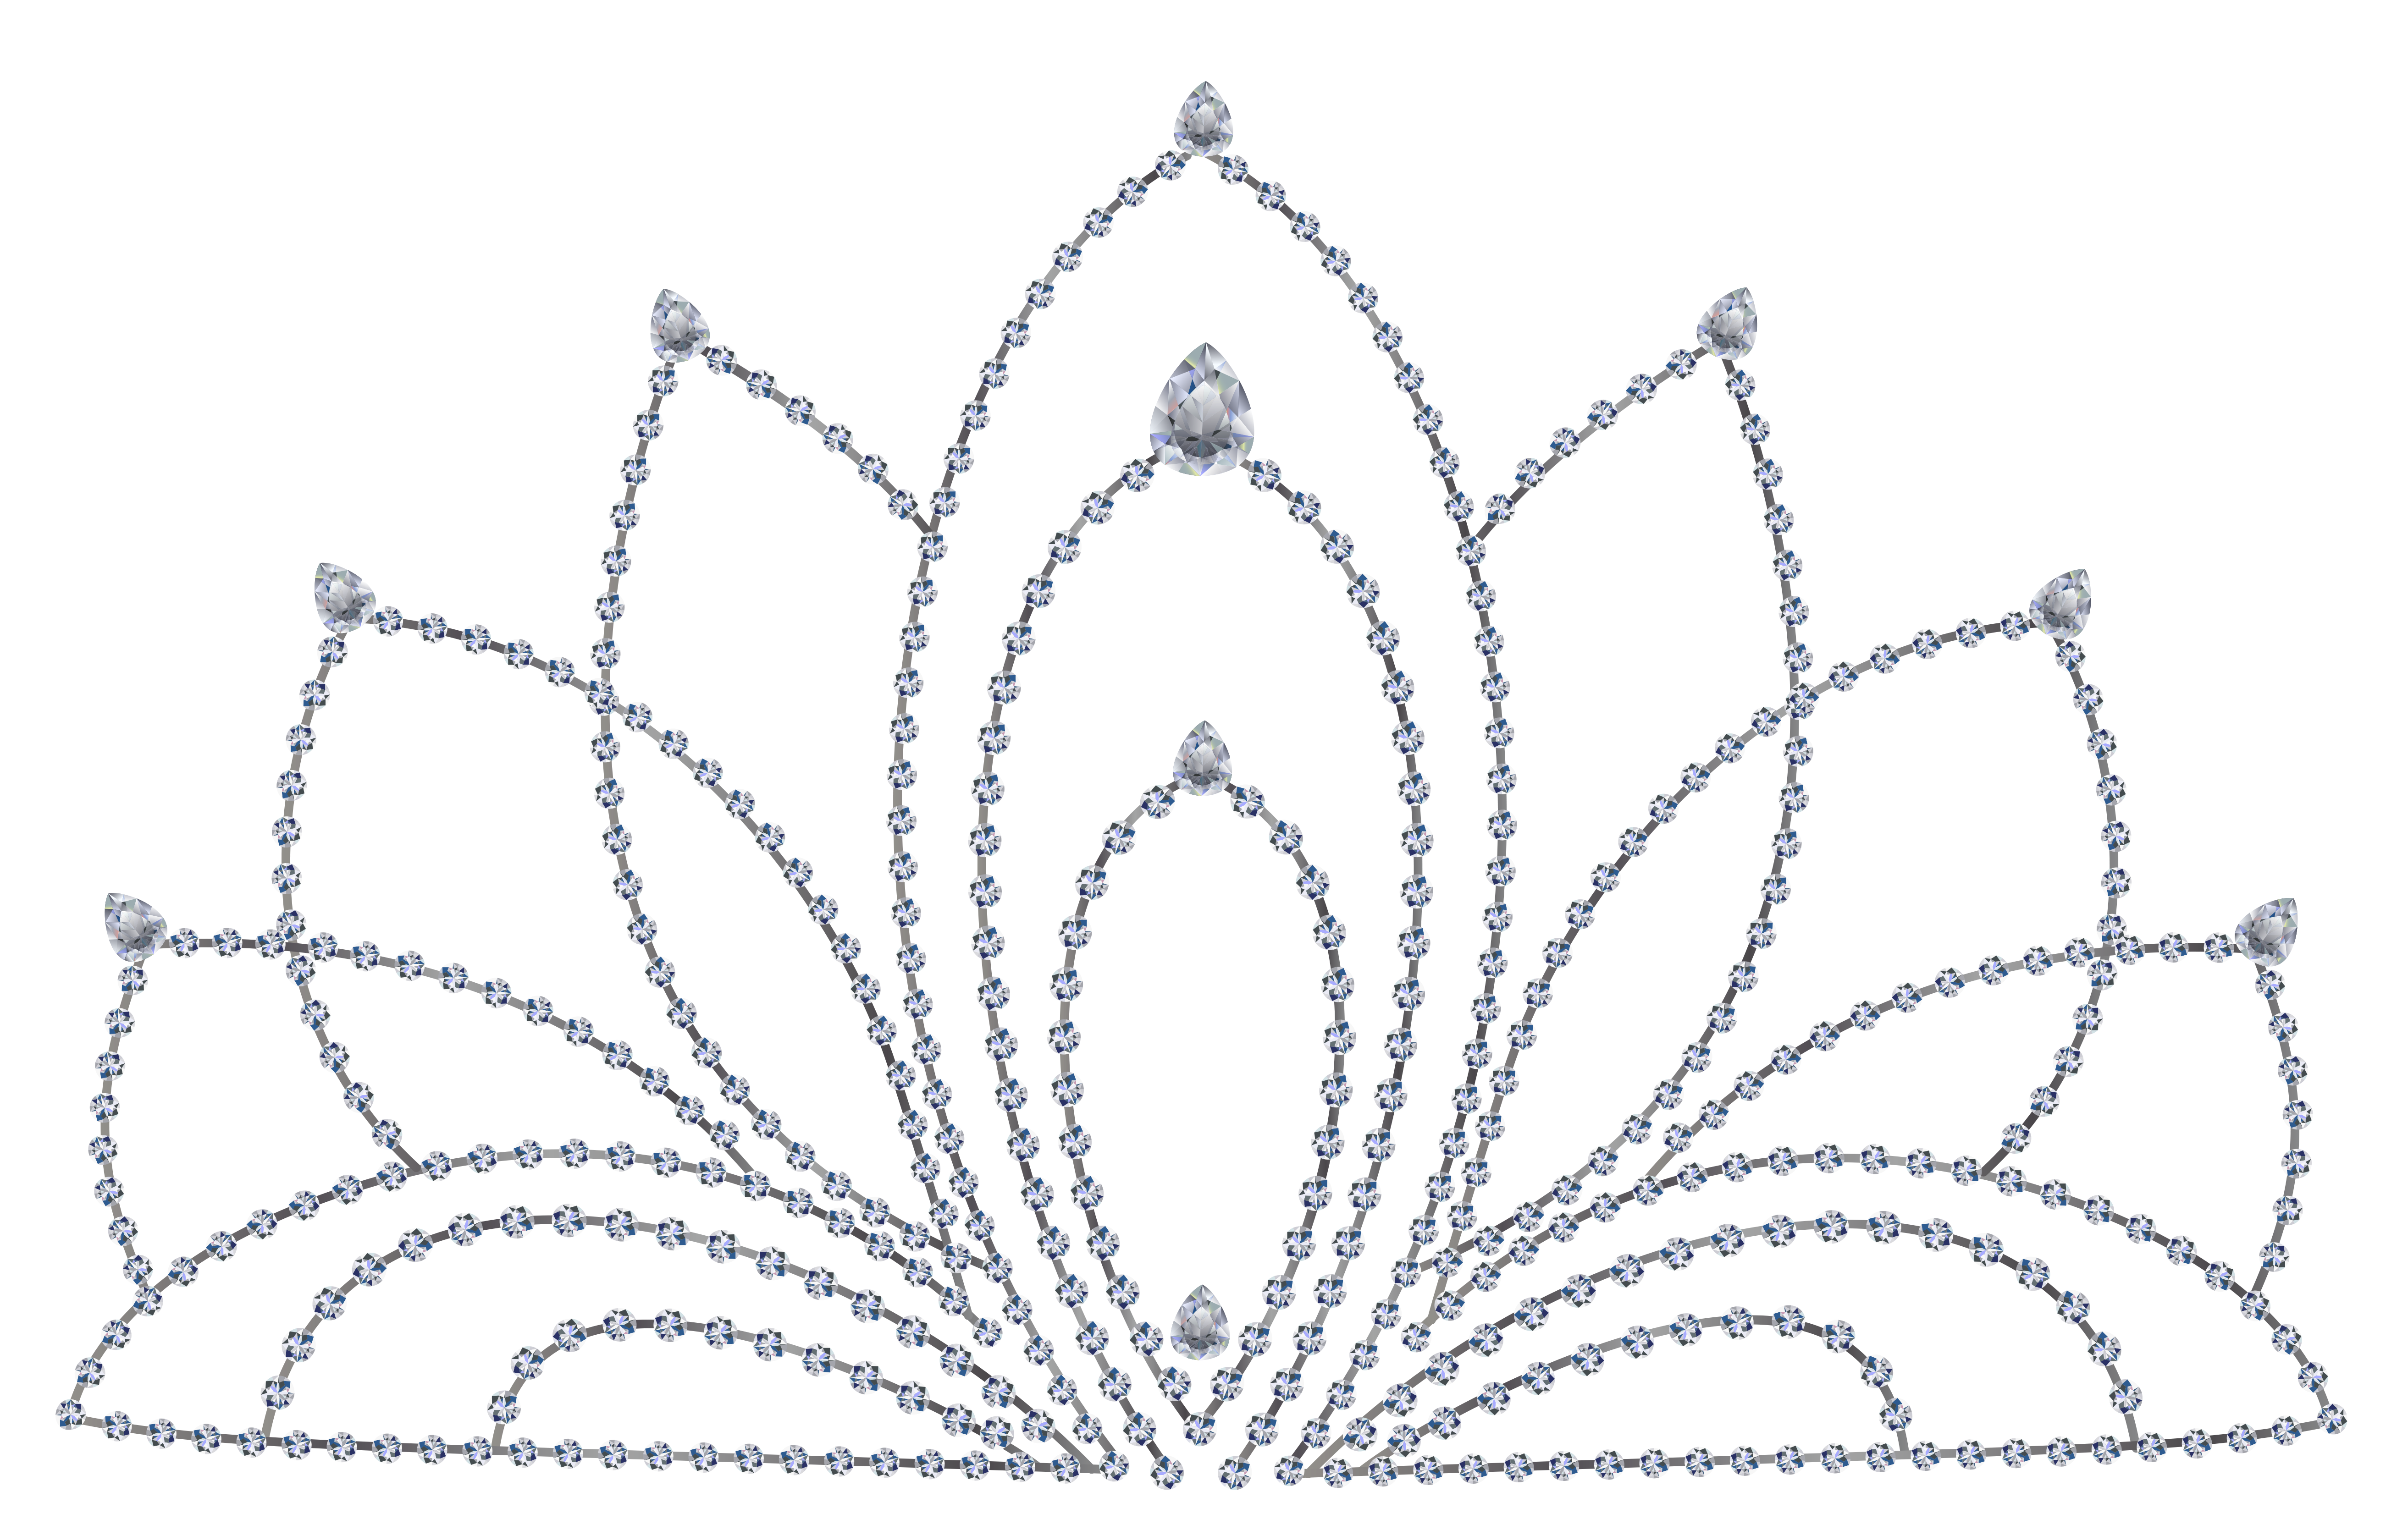 Diamond clipart clear background. Tiara png gallery yopriceville